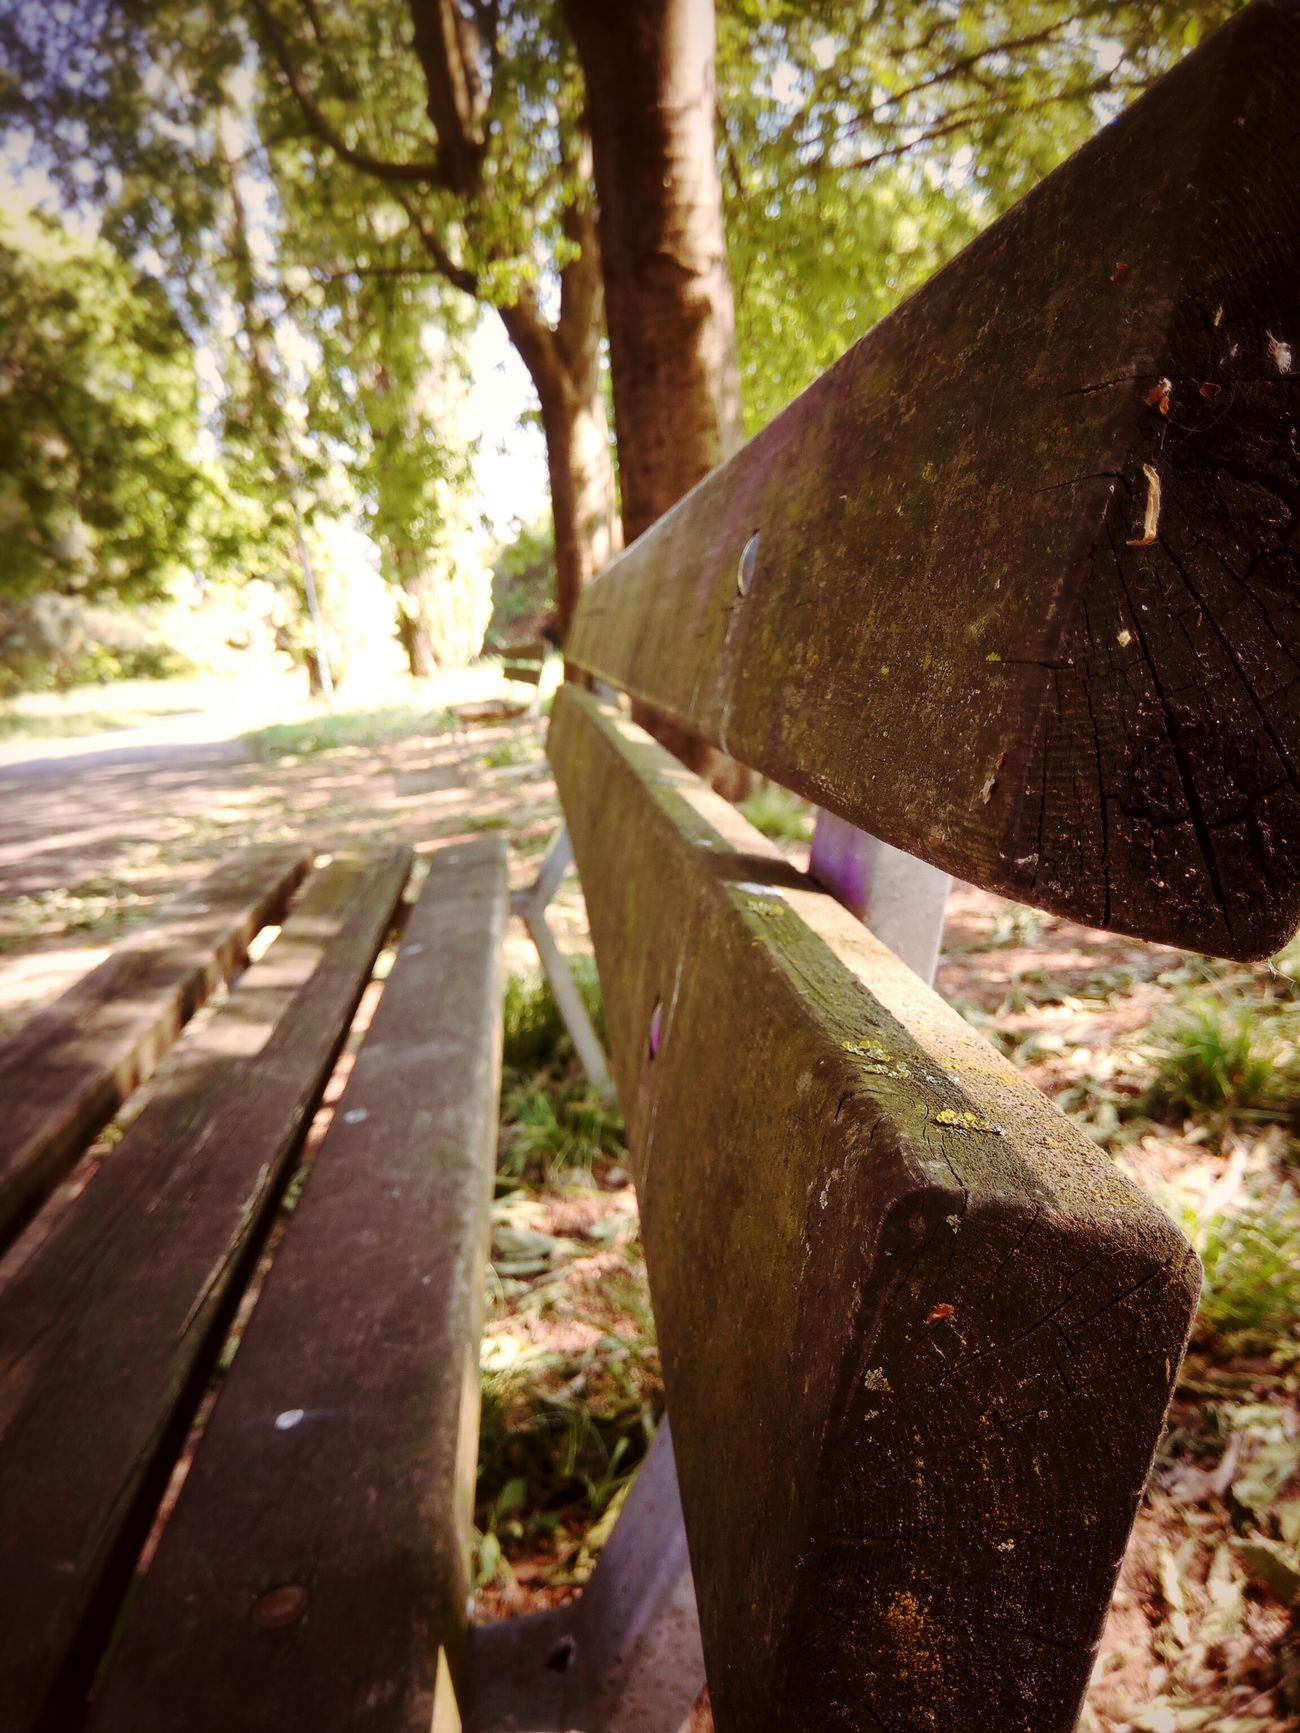 Tree Day Outdoors Nature Tree Trunk Road No People Forest Close-up Park Bench Nature 🌸Nature🌸 Plant Leaf Leaf 🍂 Leafs Leafs 🍃 Green Color Green Verde Foglie Sun Sole